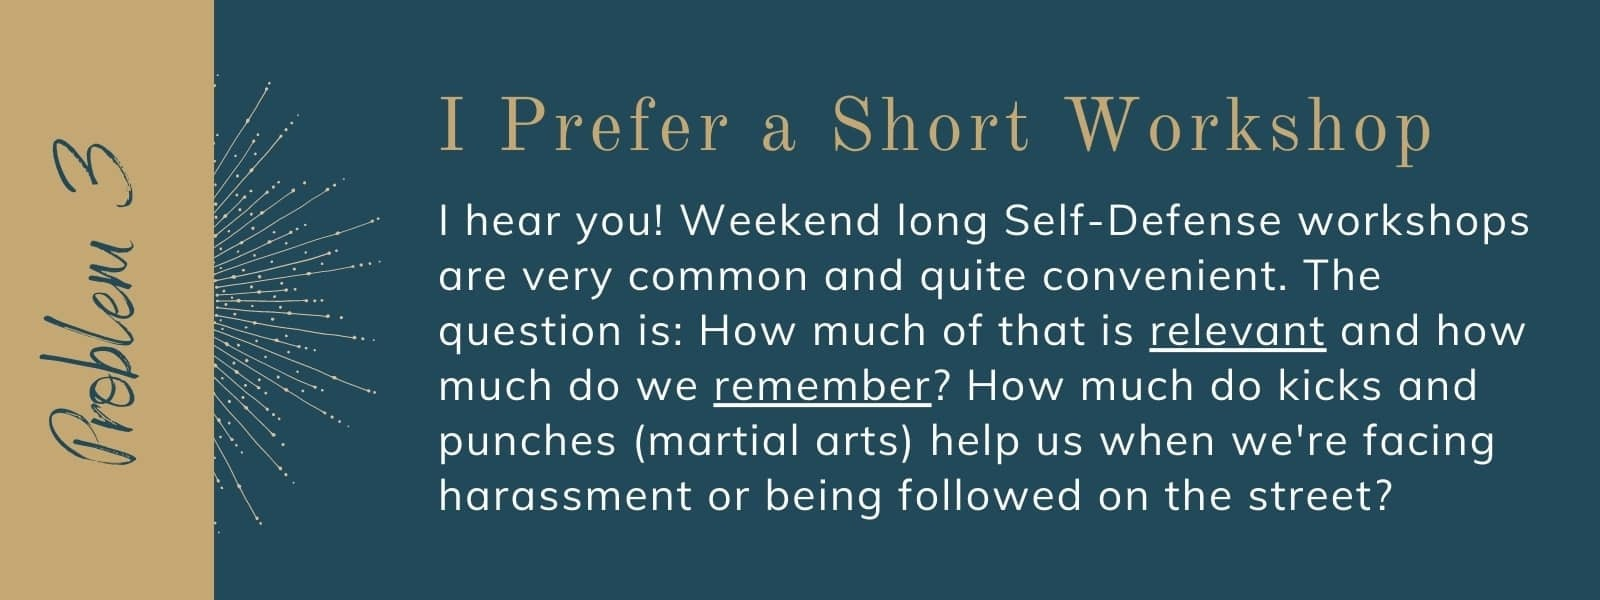 I hear you! Weekend long Self-Defense workshops are very common and quite convenient. The question is: How much of that is relevant and how much do we remember? How much do kicks and punches (martial arts) help us when we're facing harassment or being followed on the street?